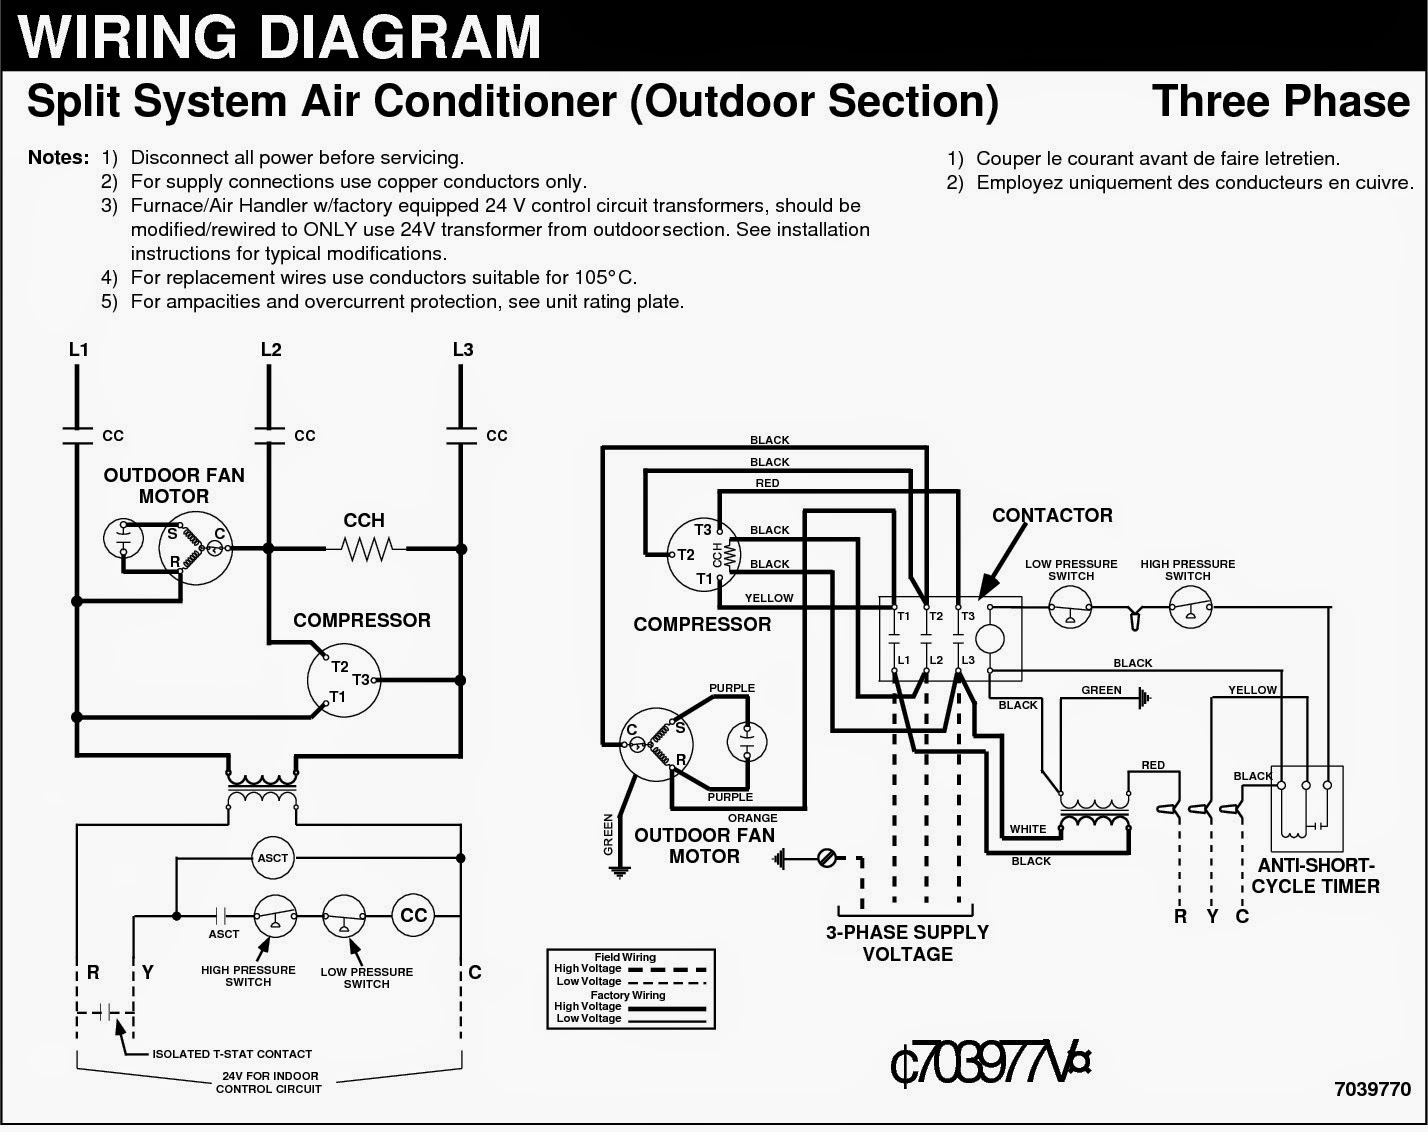 3+phase ac compressor wiring diagram bitzer compressor wiring diagram a c compressor wiring diagram at cos-gaming.co